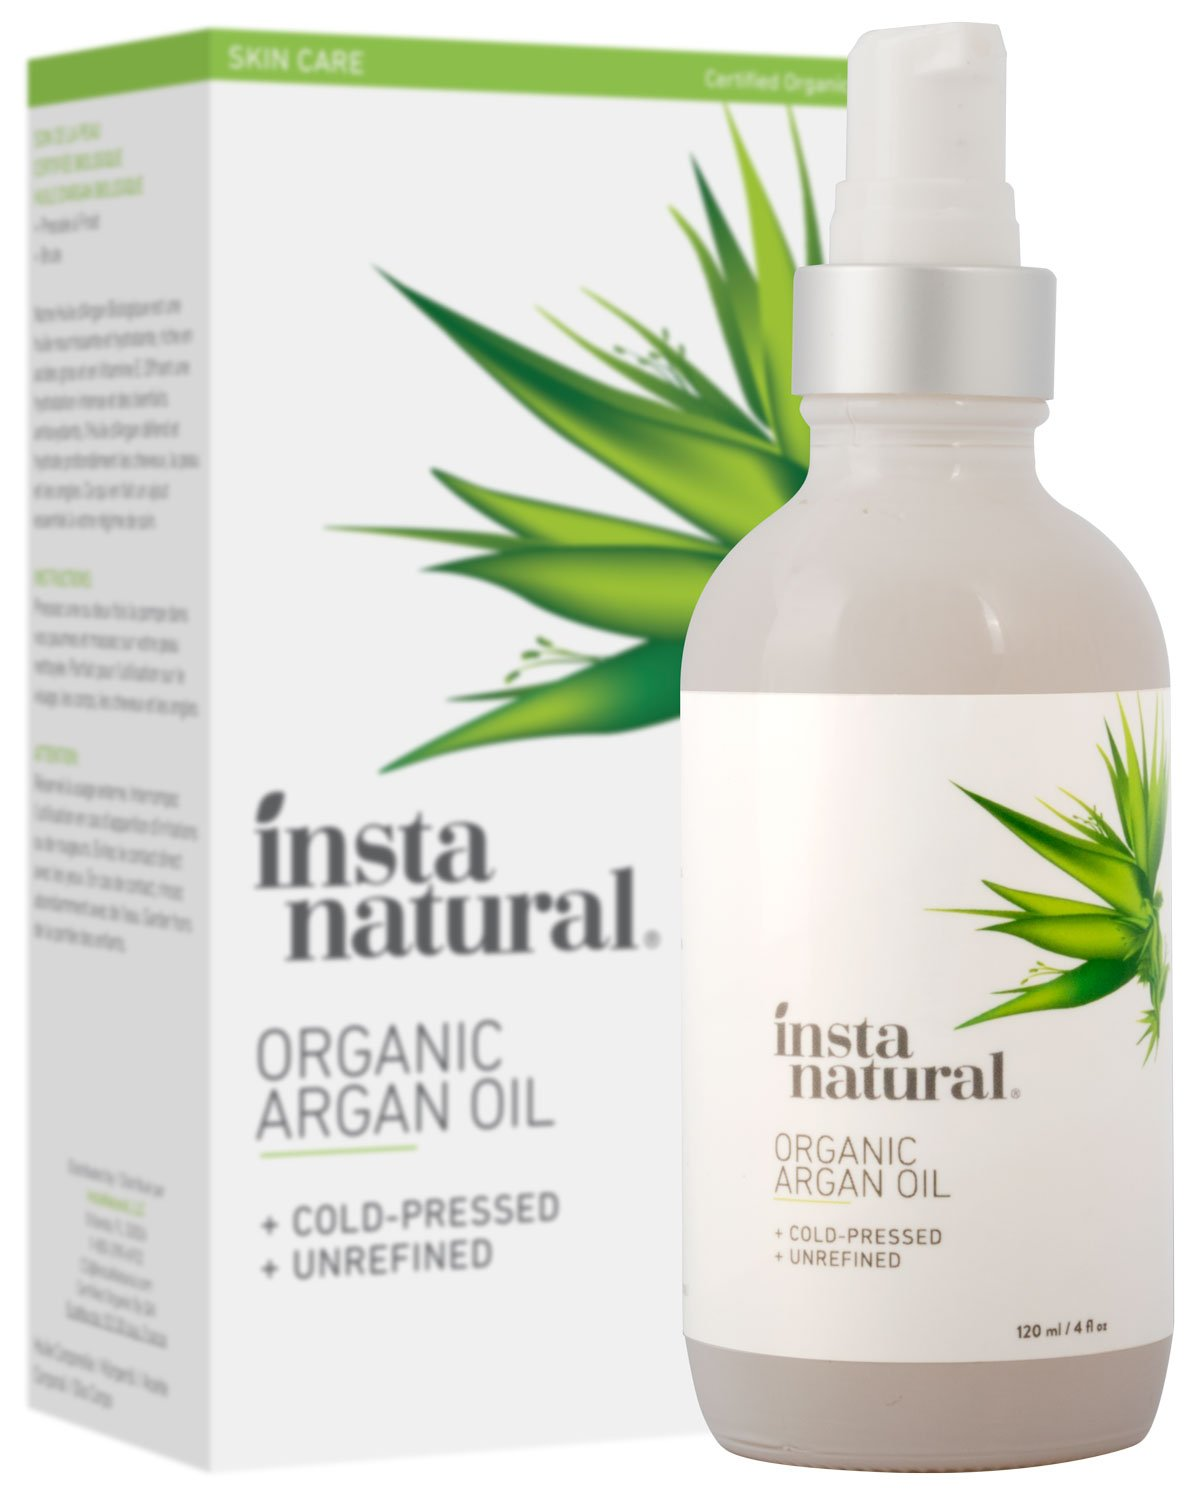 InstaNatural Organic Argan Oil, 4 Fluid Ounce SETAF INS010901000118